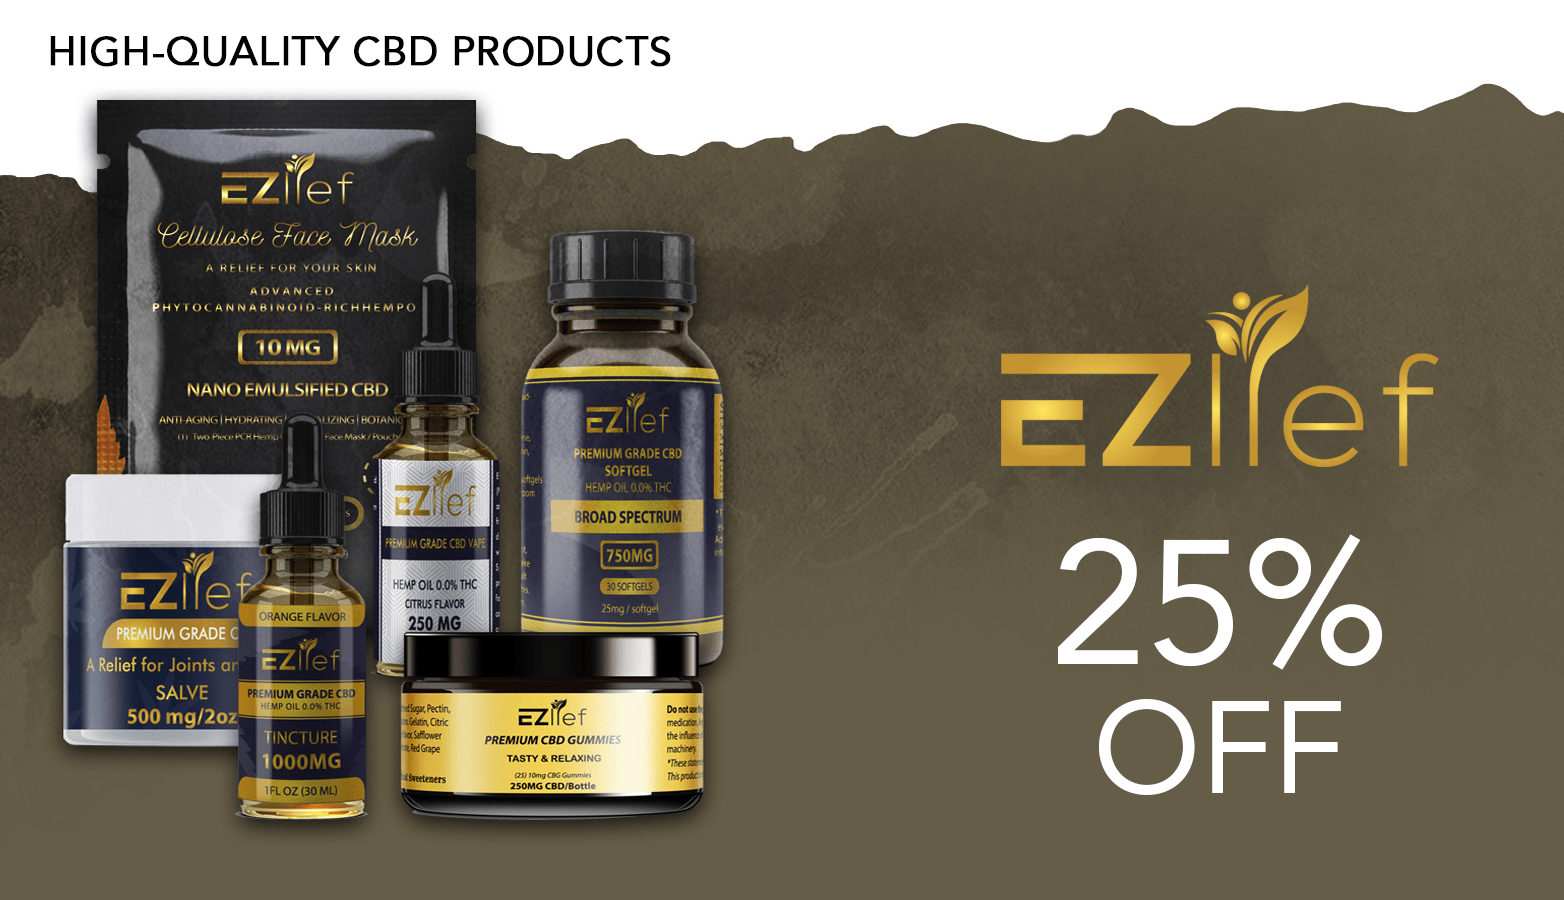 Ezlief Coupon Code Discount Offer